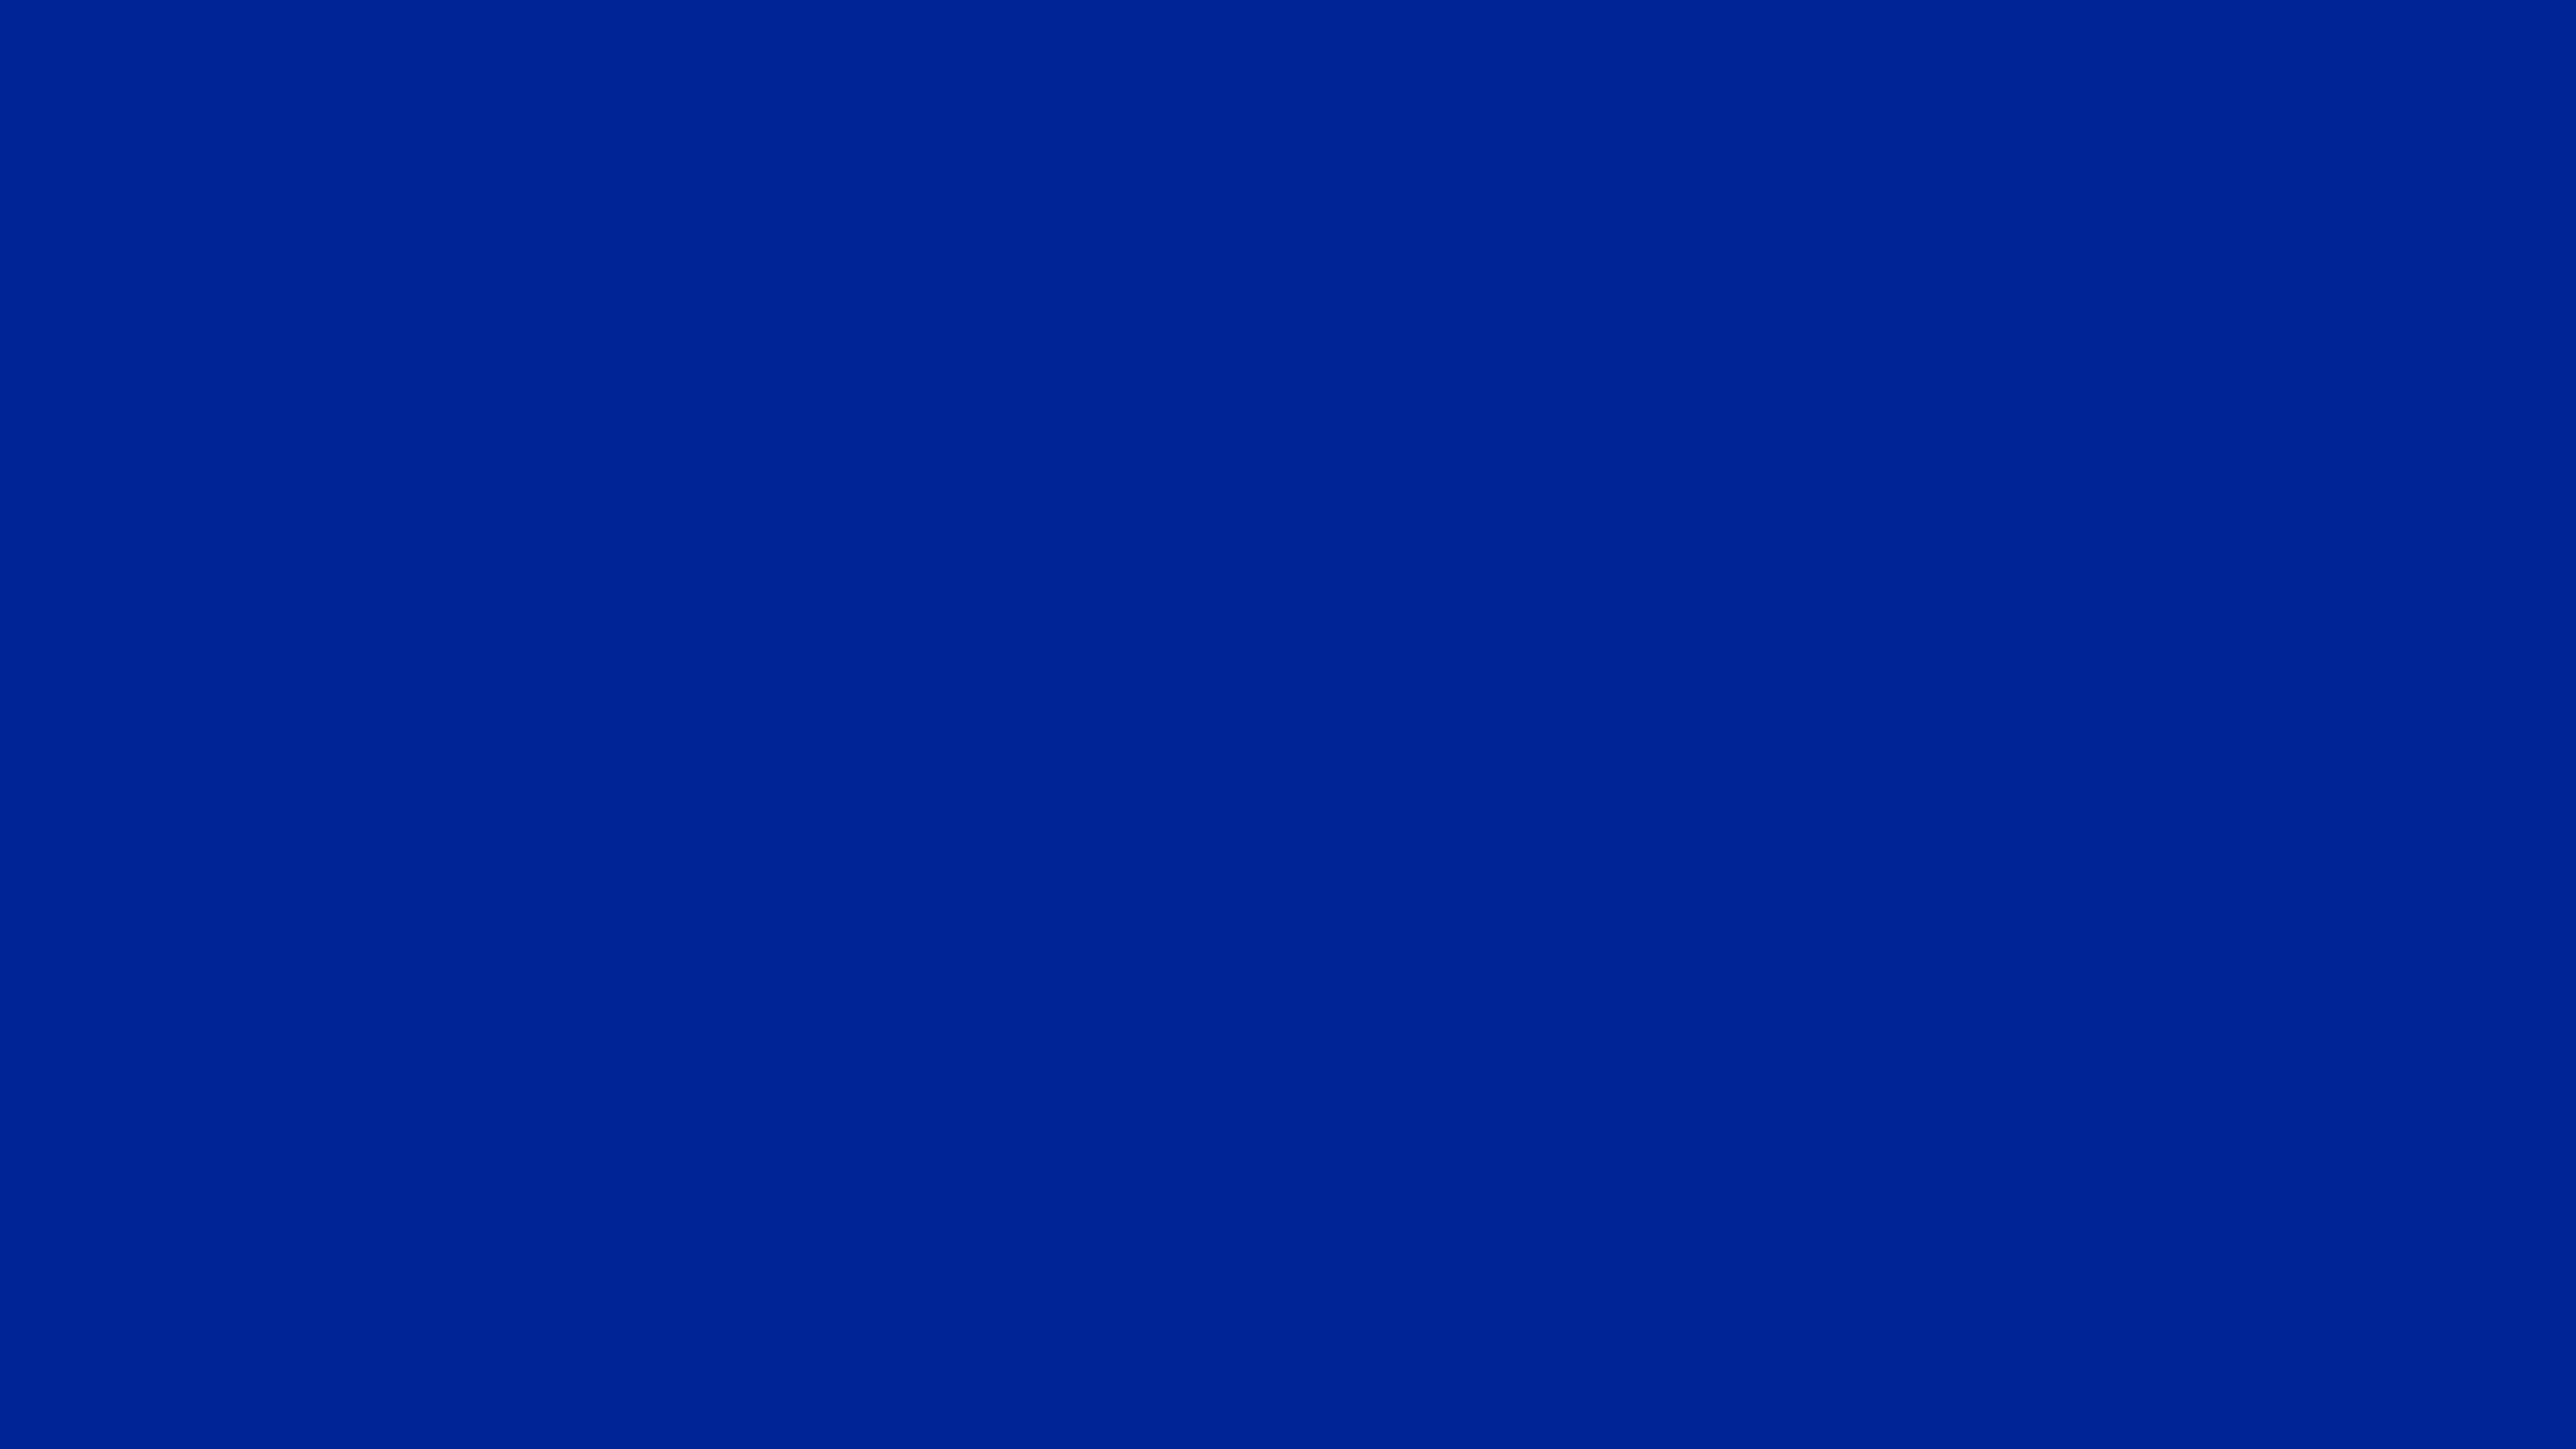 3840x2160 Imperial Blue Solid Color Background